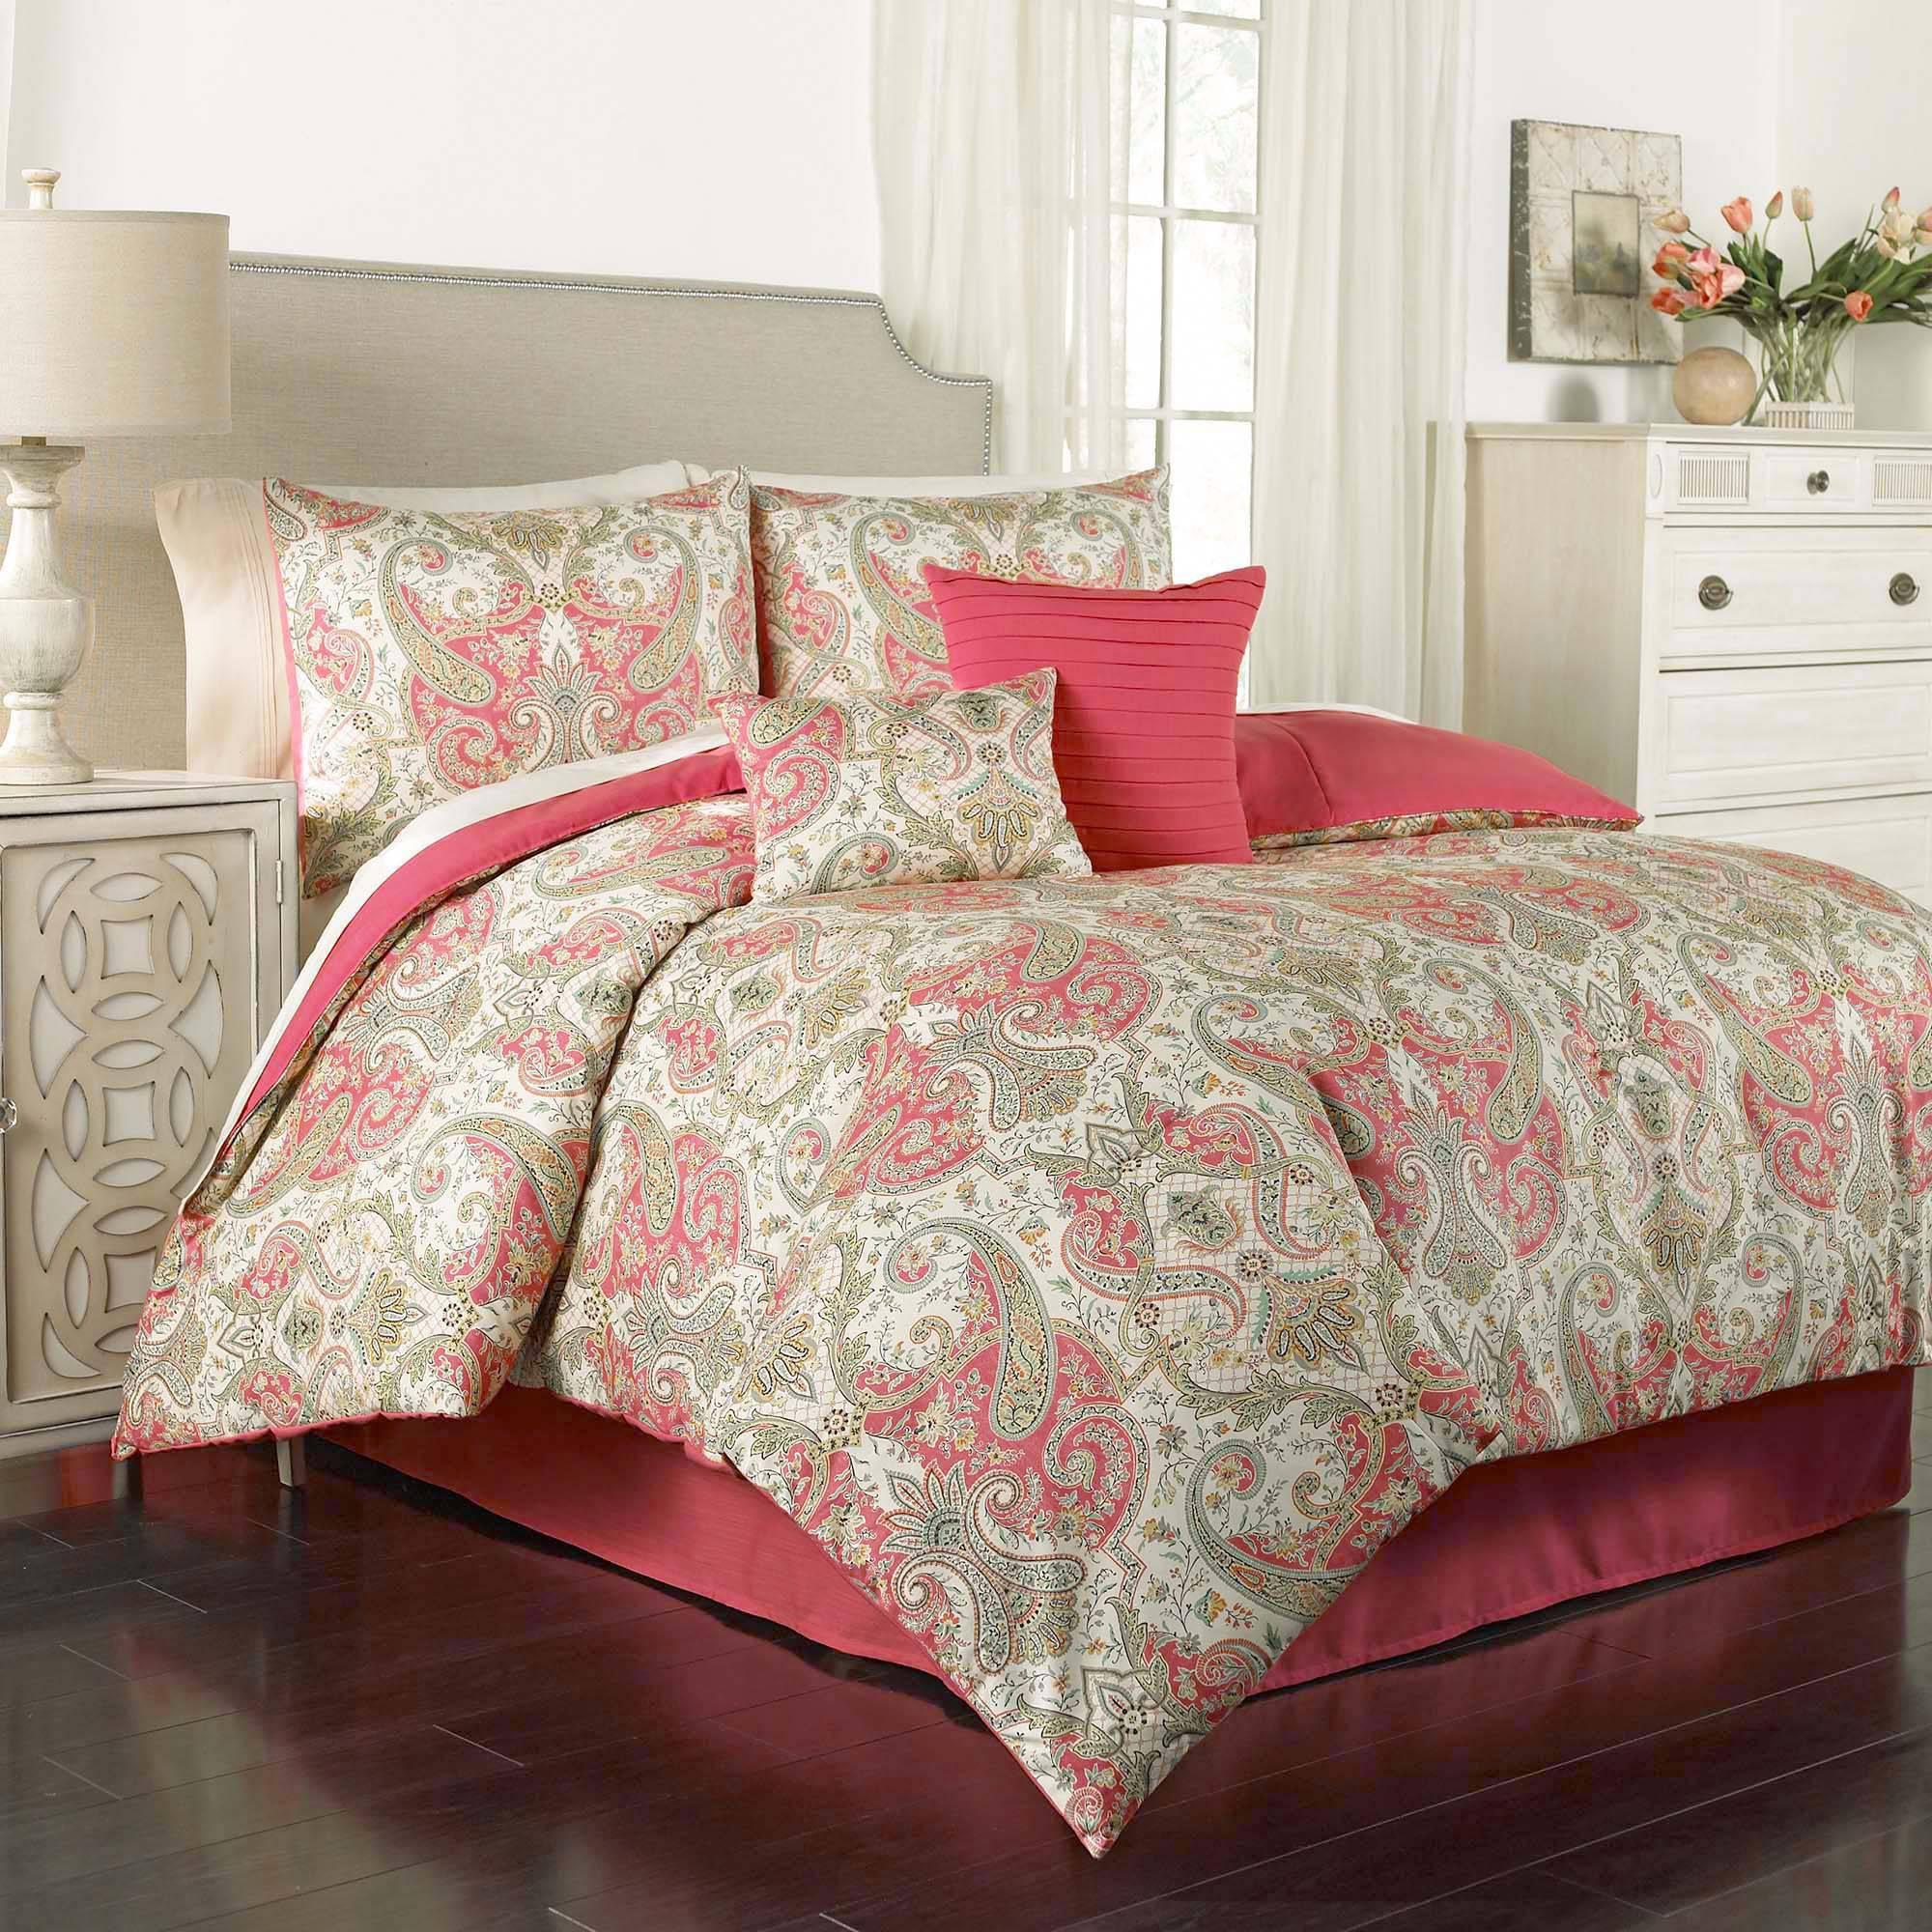 Traditions By Waverly Lyrical Legend 6 Piece Bedding Comforter Set